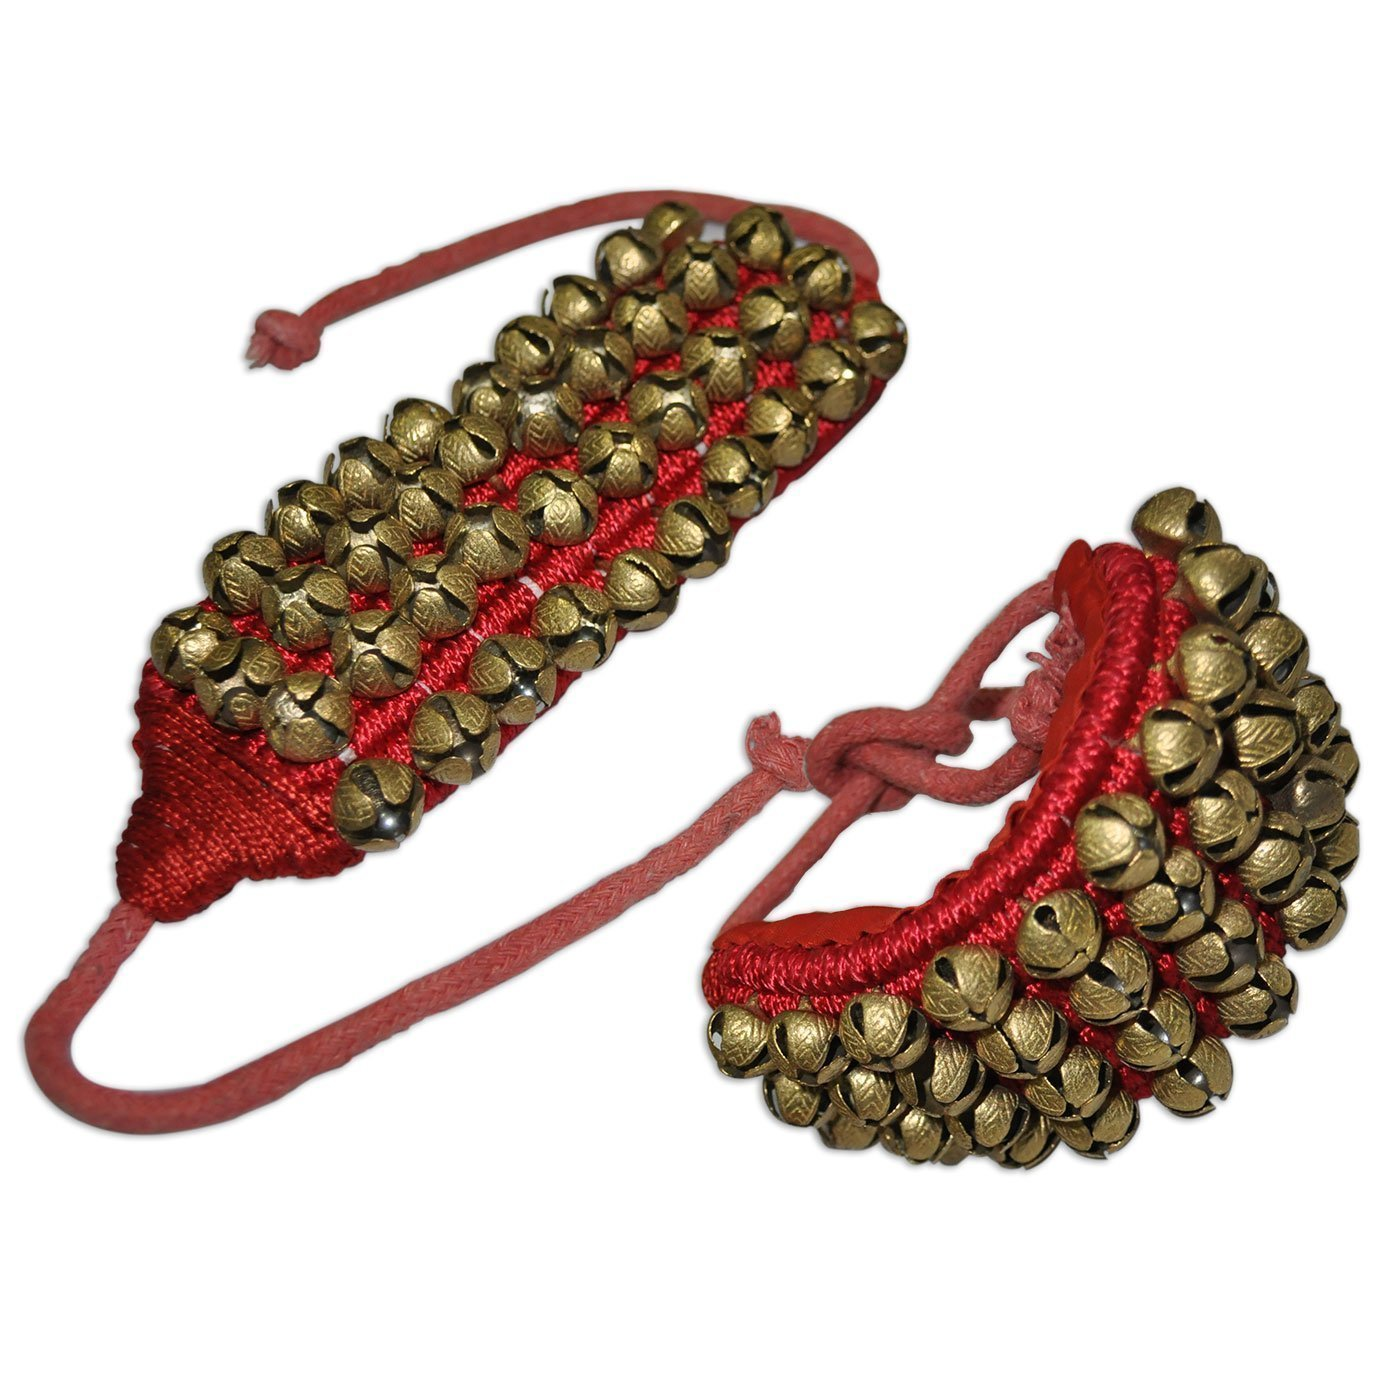 Winmaarc Handmade Indian Classical Ghungroo Dance Accessories Bharatnatyam, Kuchipudi, Odissi Ghungru For Dancer's Feet (40 bells + 40 bells)